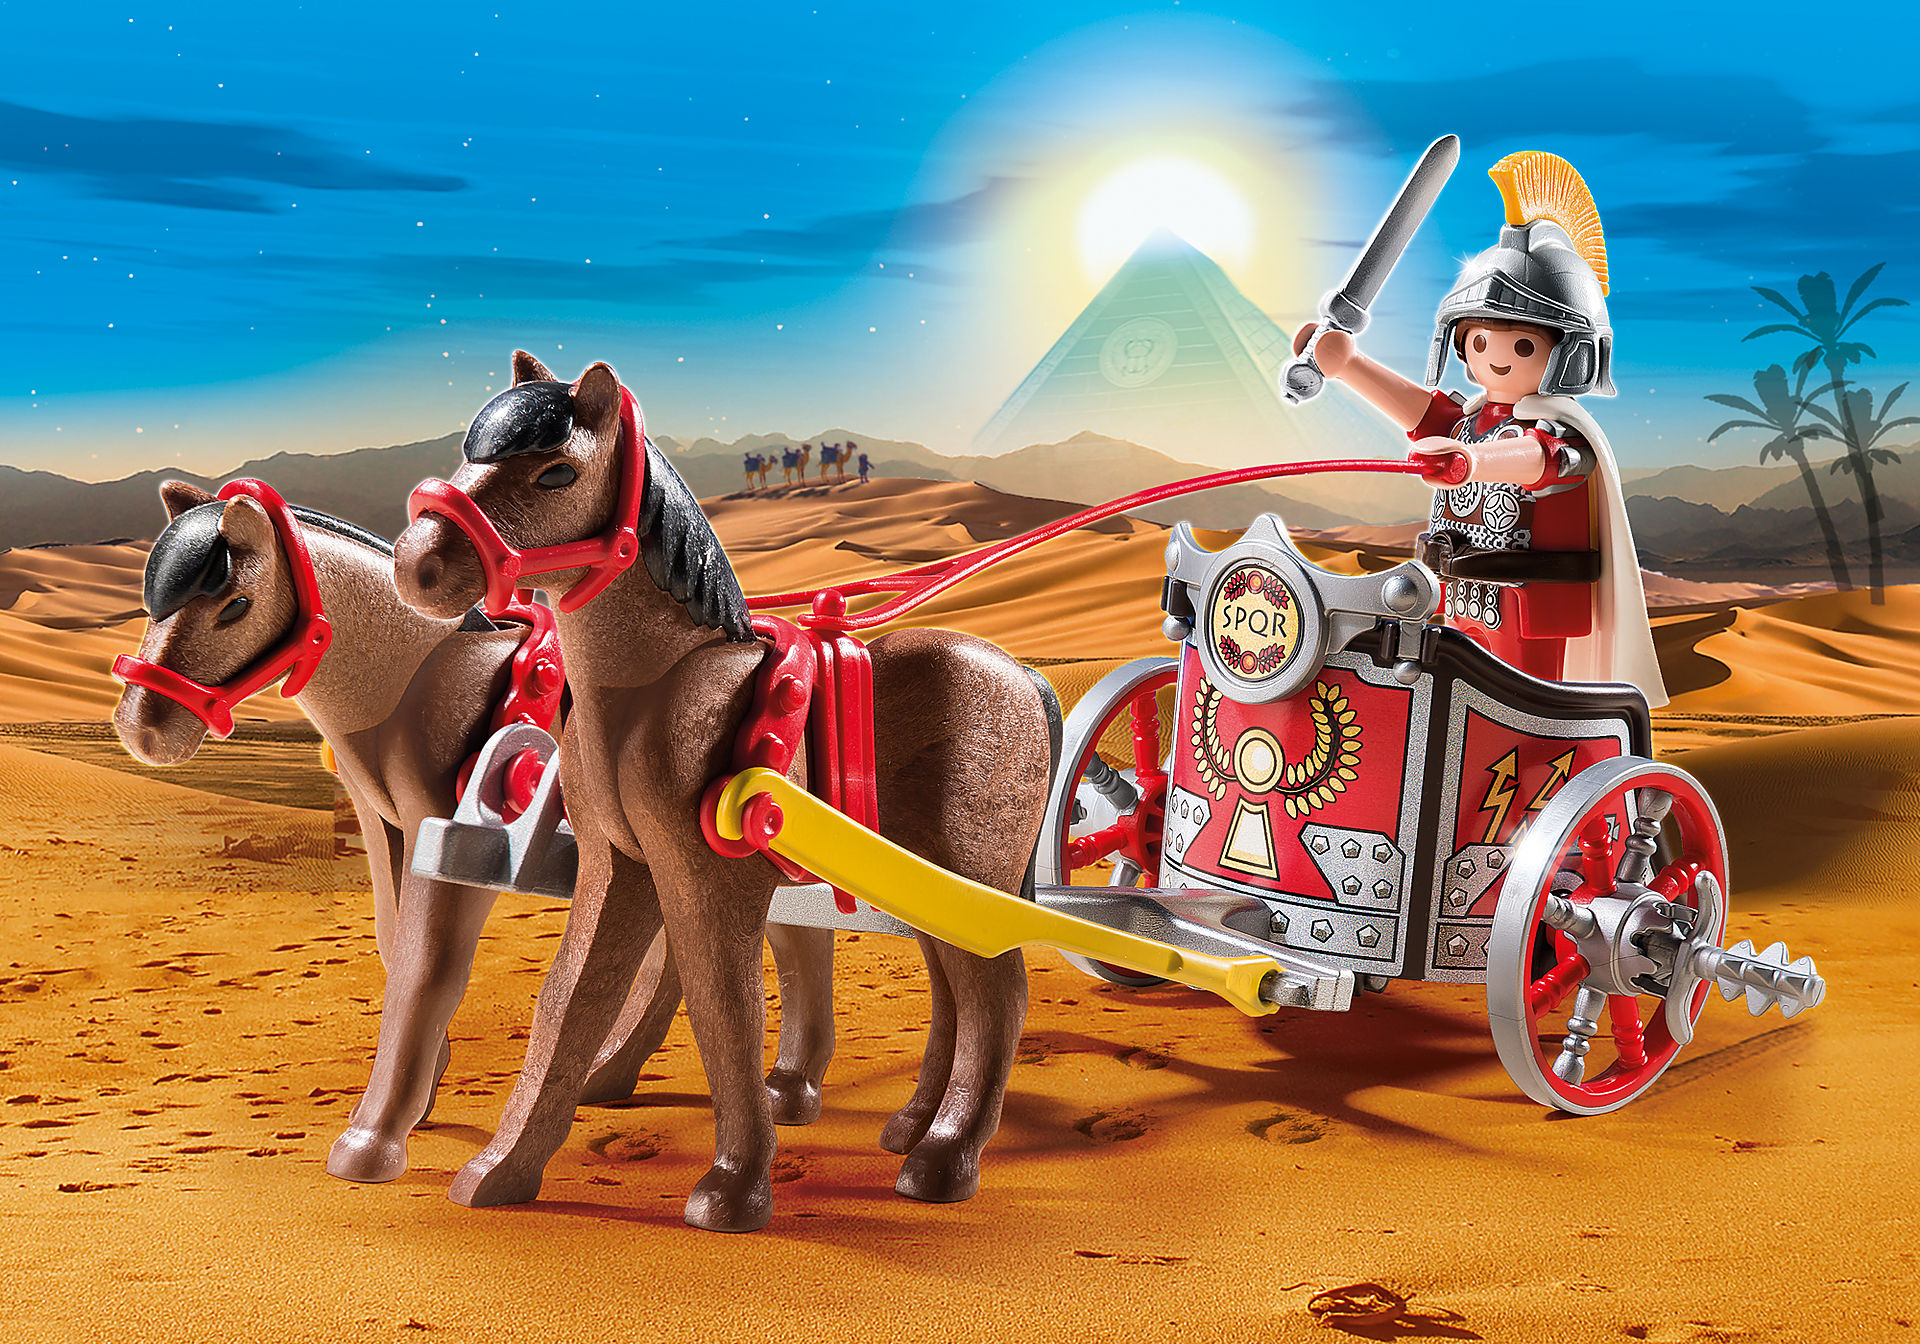 http://media.playmobil.com/i/playmobil/5391_product_detail/Римляне и Египтяне: Римская Колесница